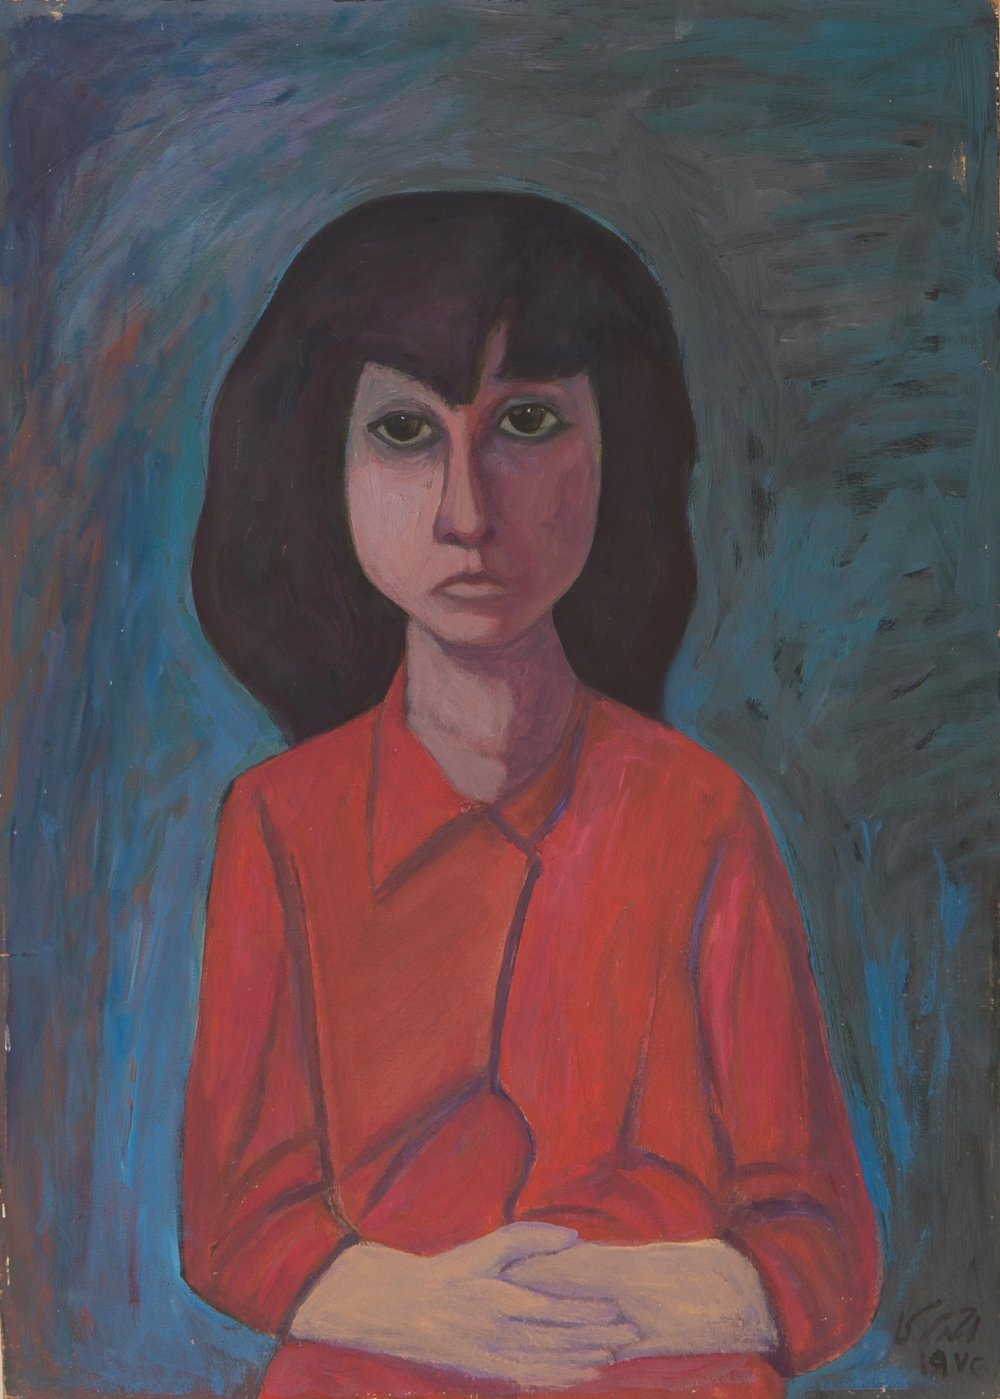 Ahmed-Morsi-Portrait-of-the-Artist's-Daughter-1975.jpg